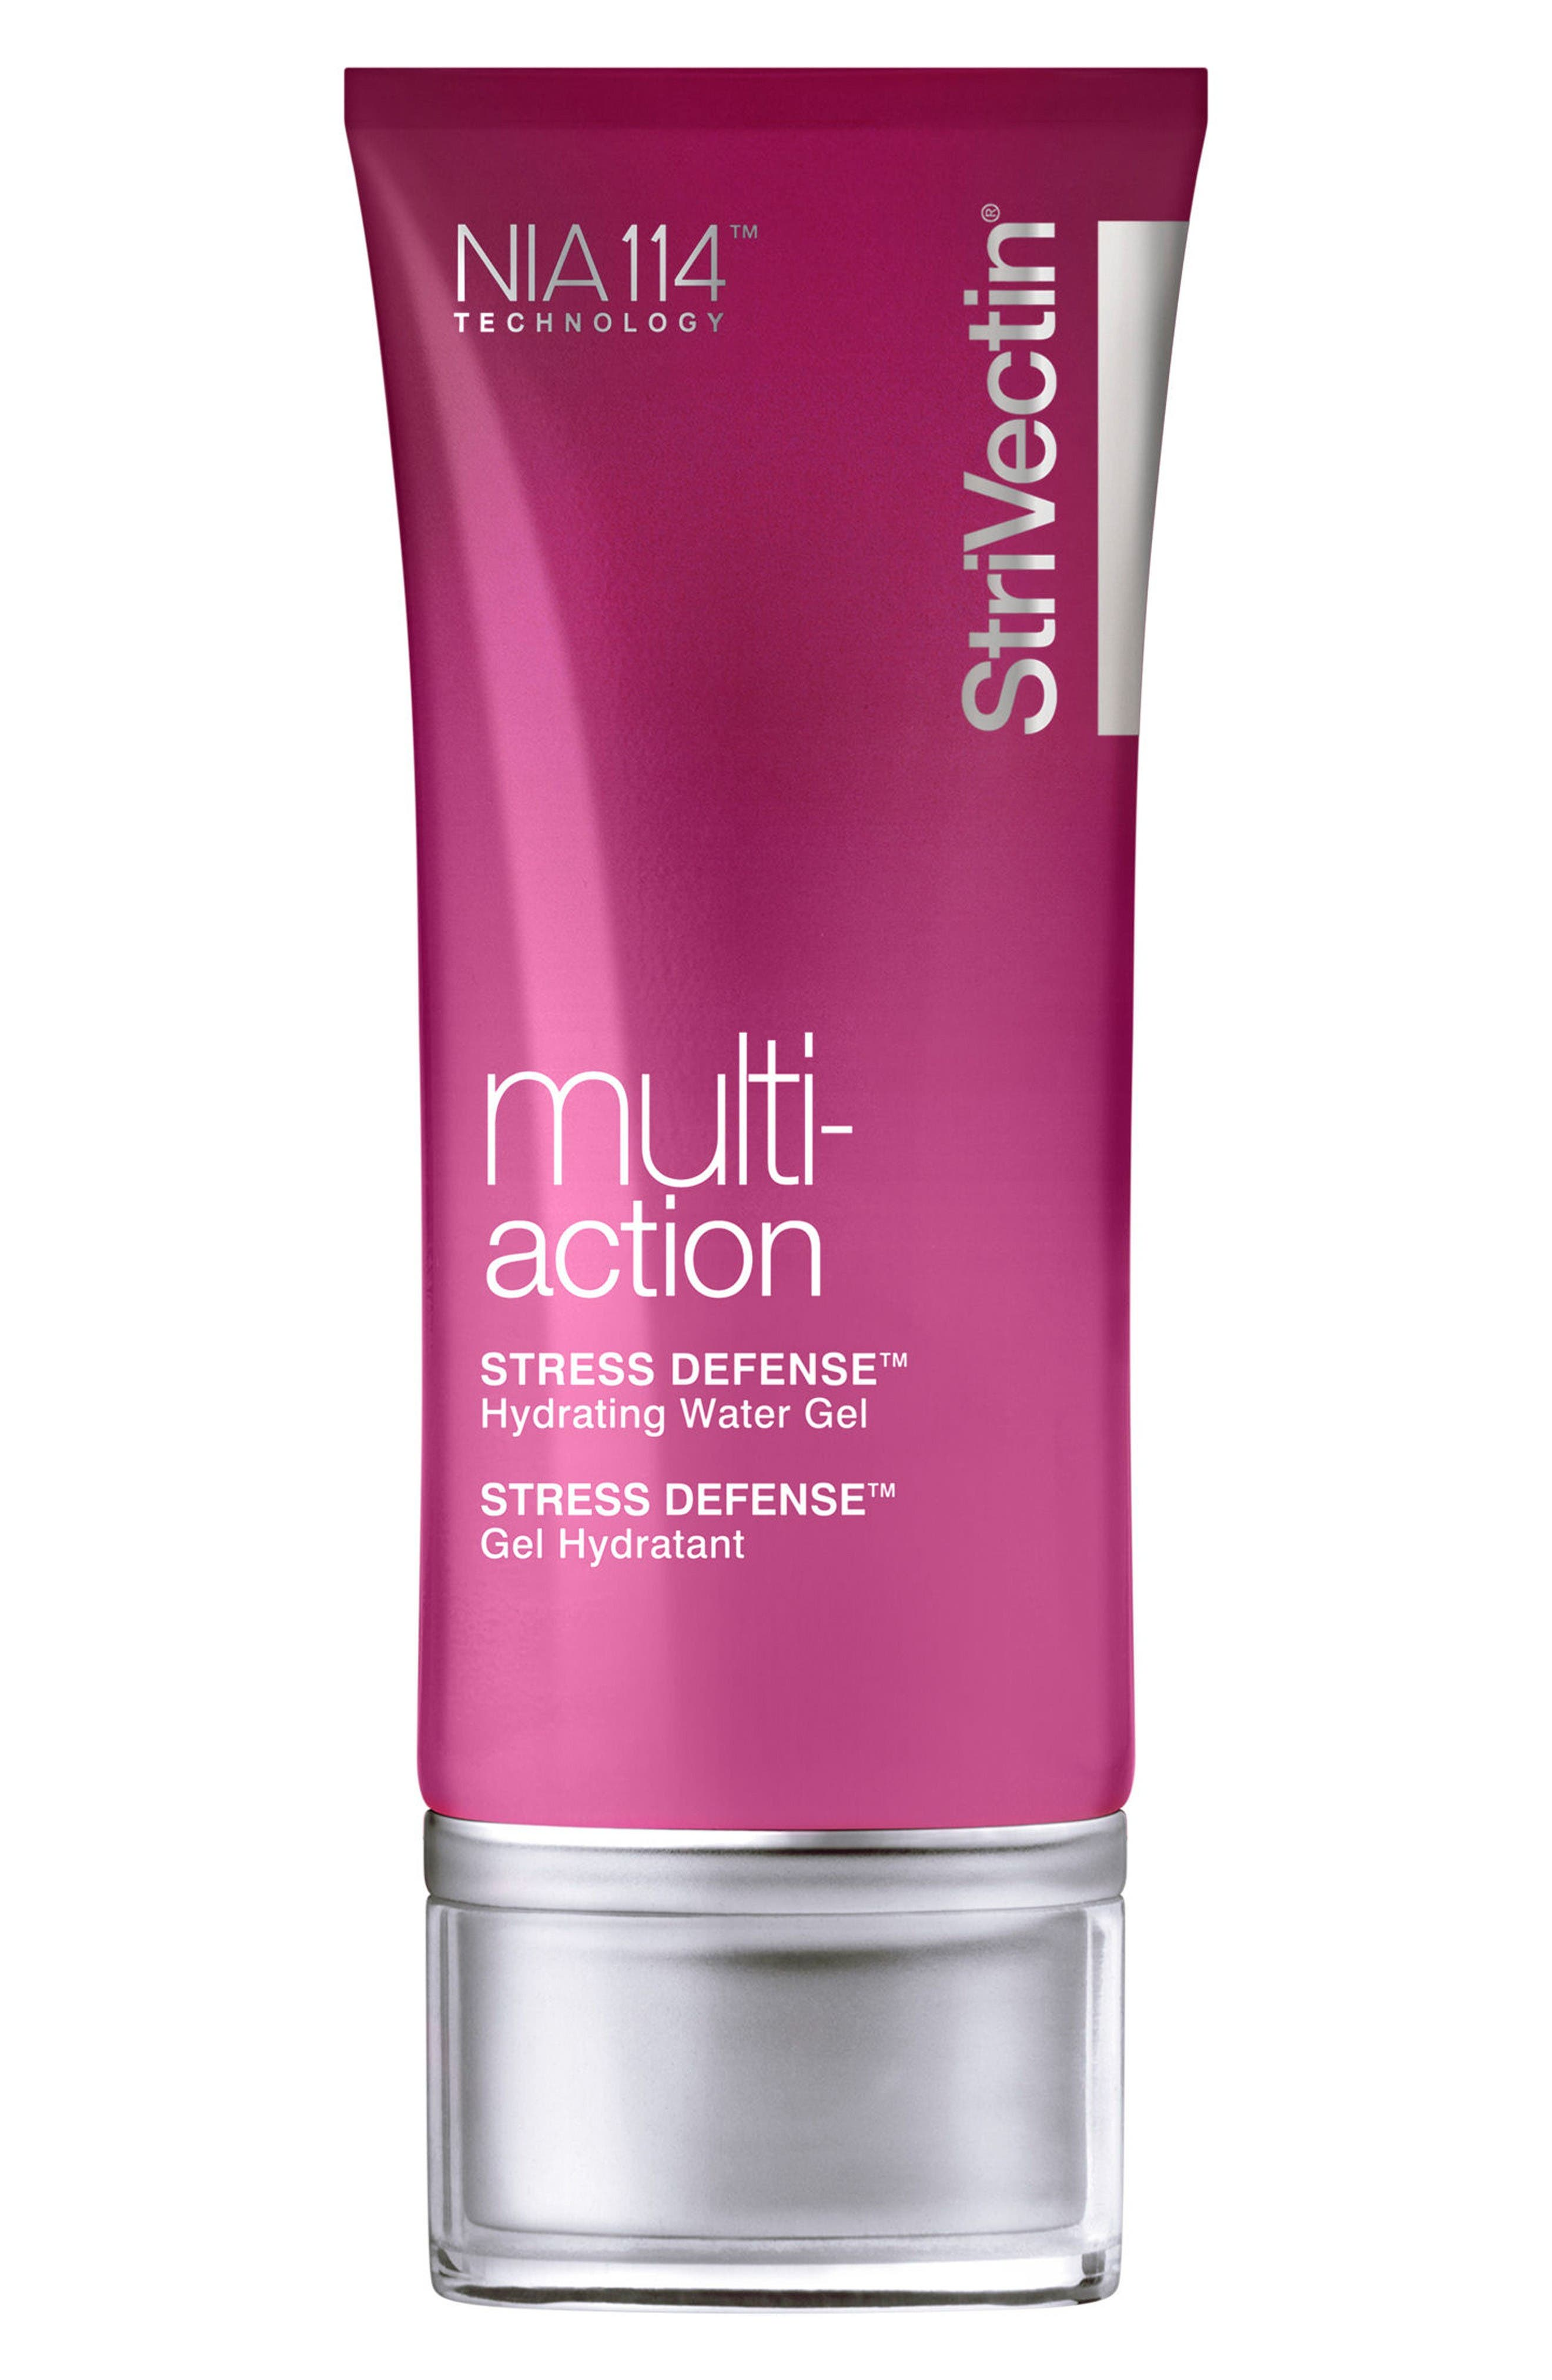 StriVectin® Stress Defense Hydrating Water Gel